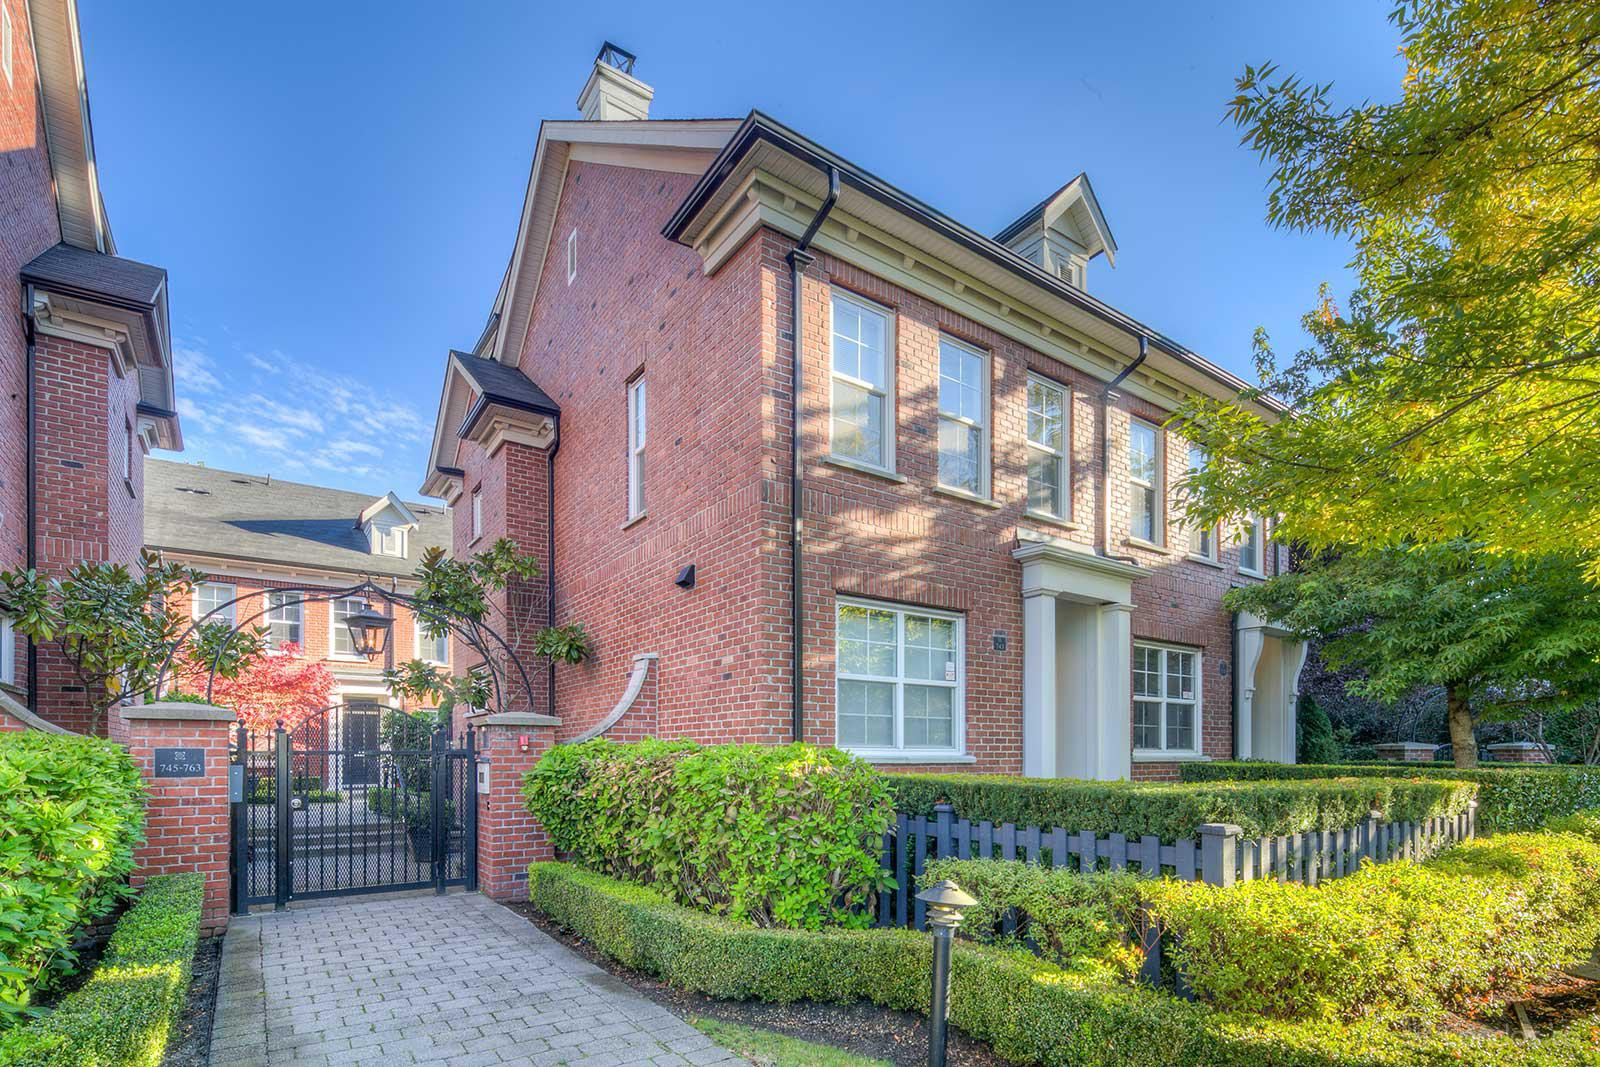 Towne at 5808 Tisdall St, Vancouver 0